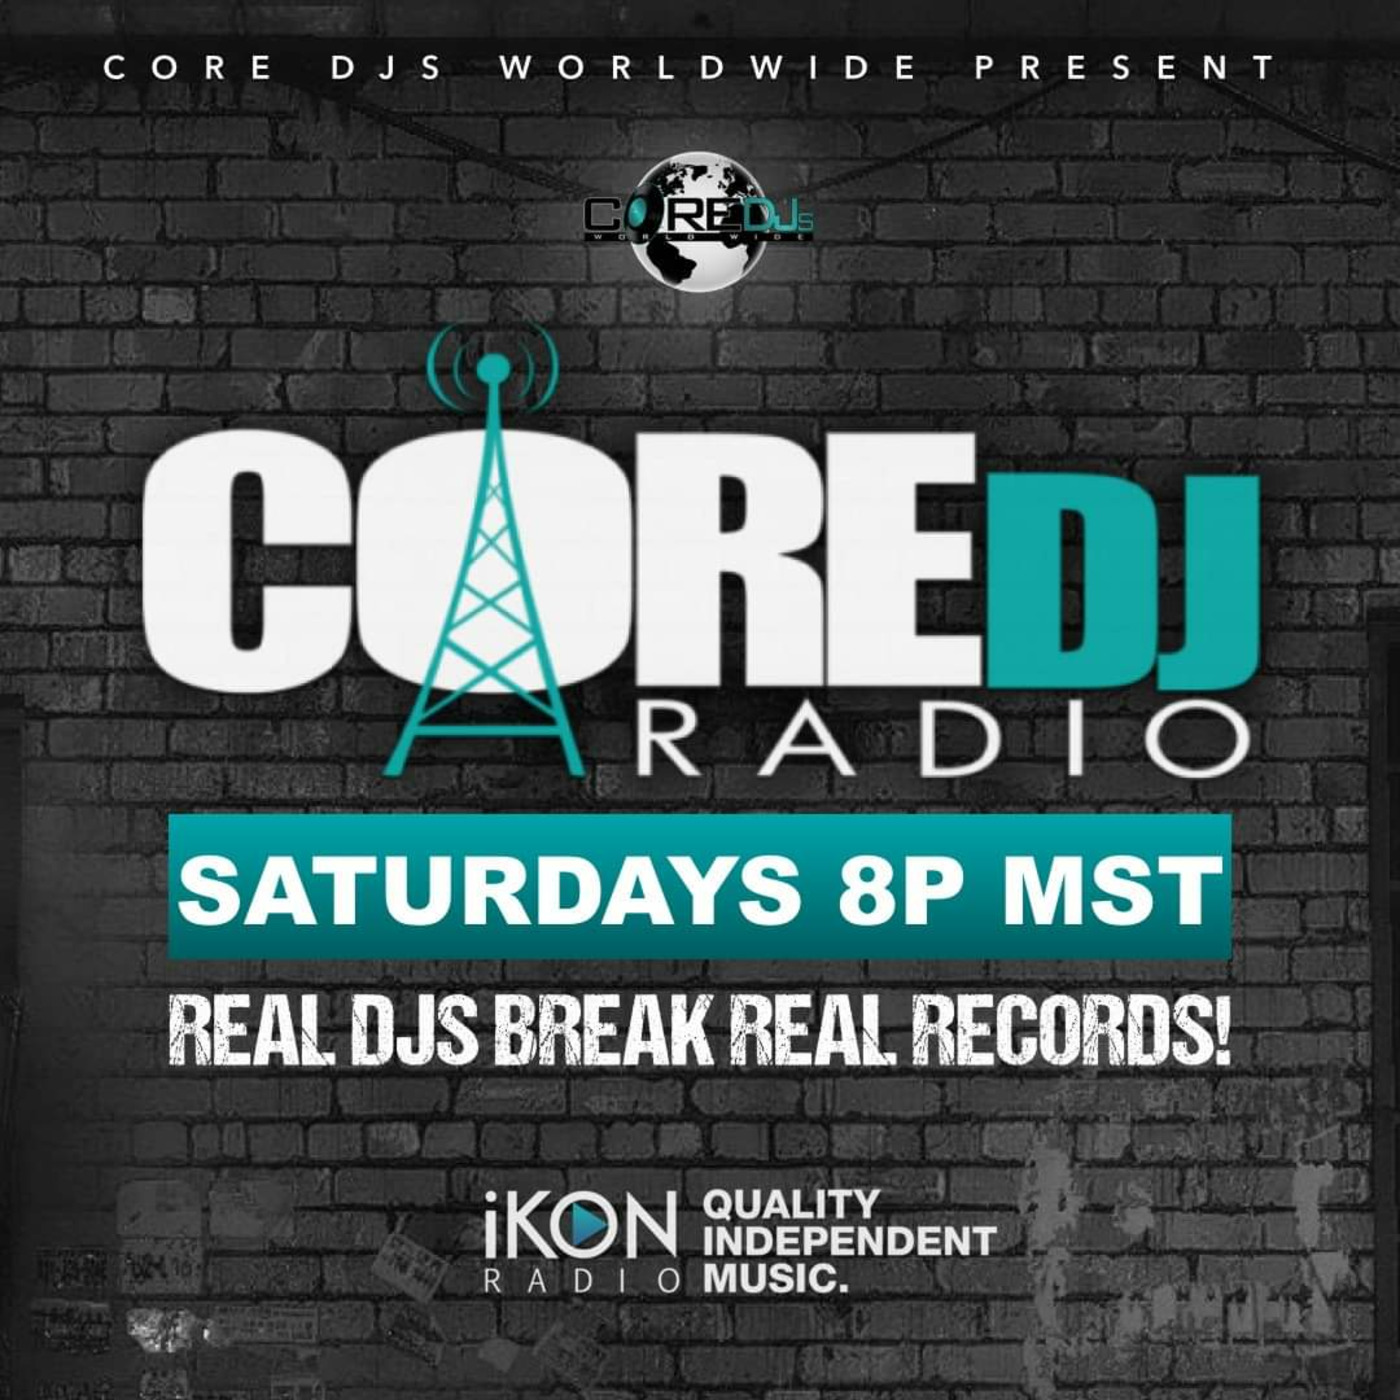 Core DJ Radio July 4th 2019 Mix (the IKon Edition) DJ